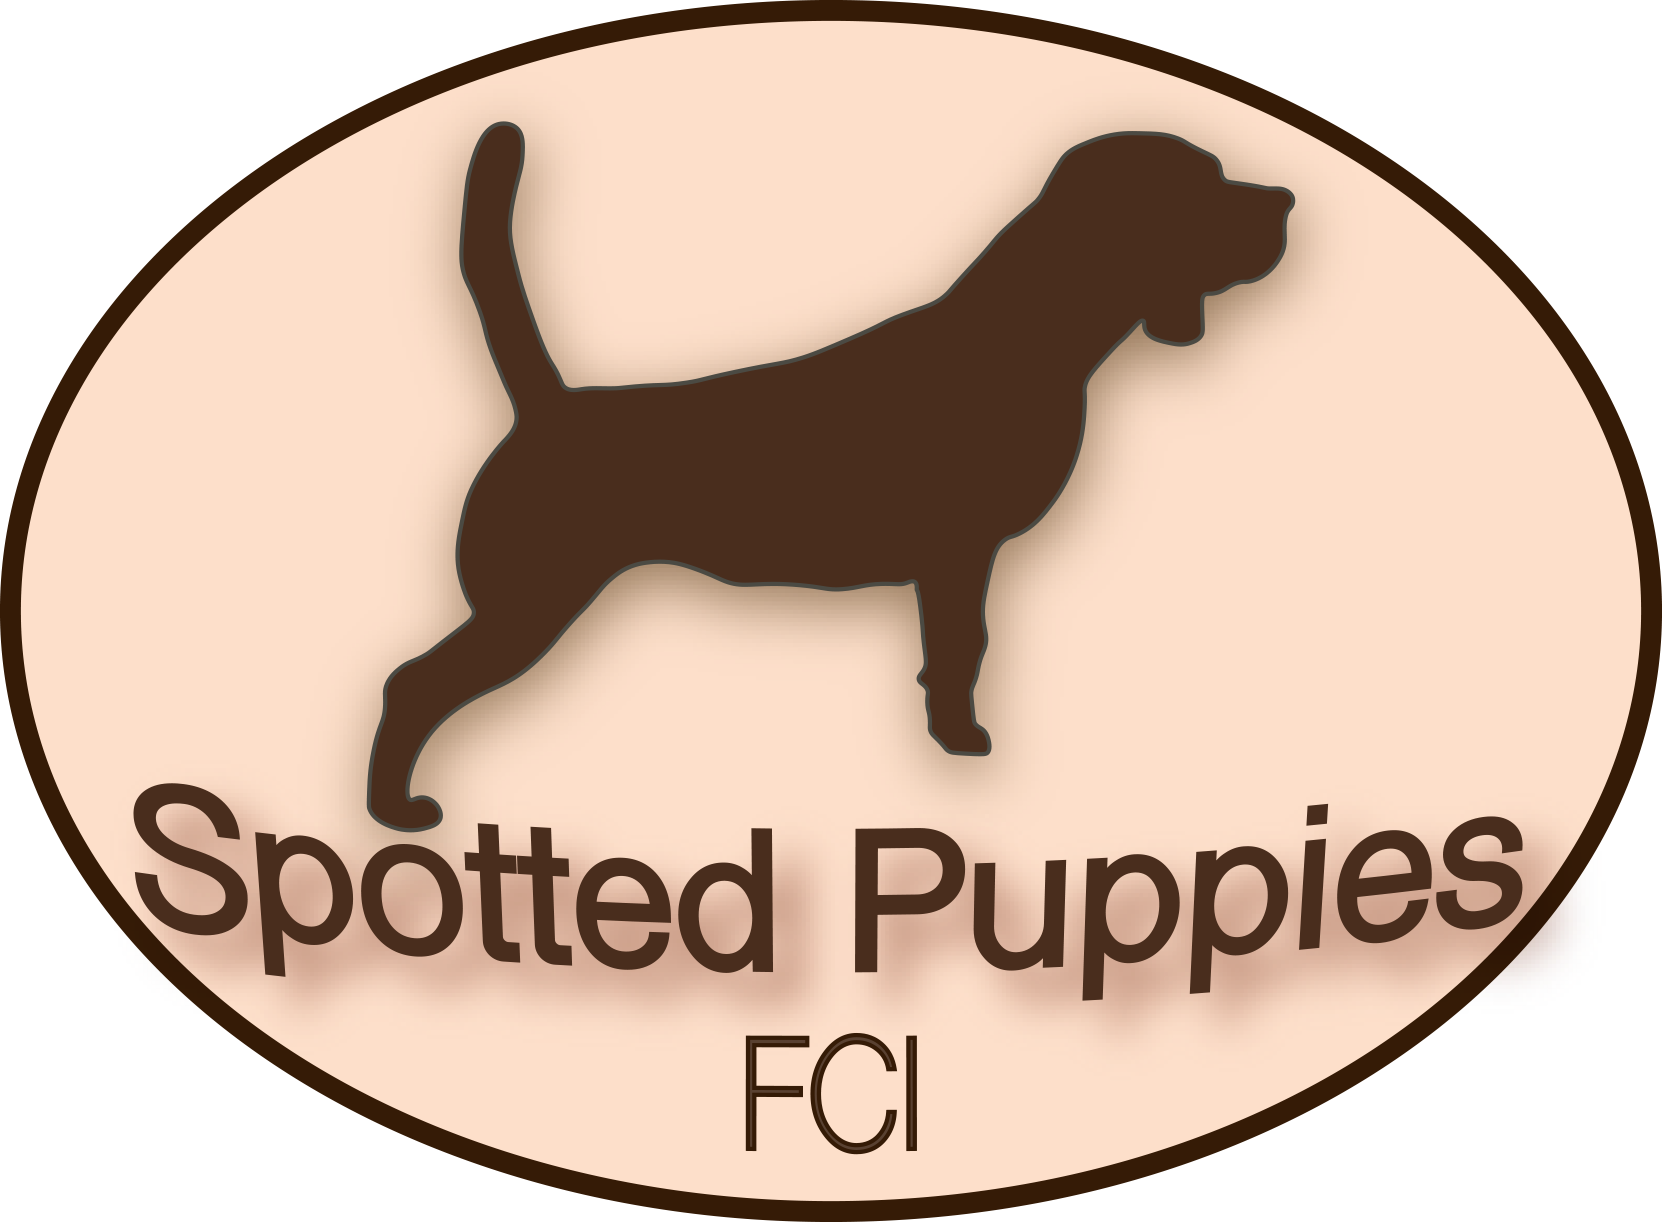 Spotted Puppies FCI